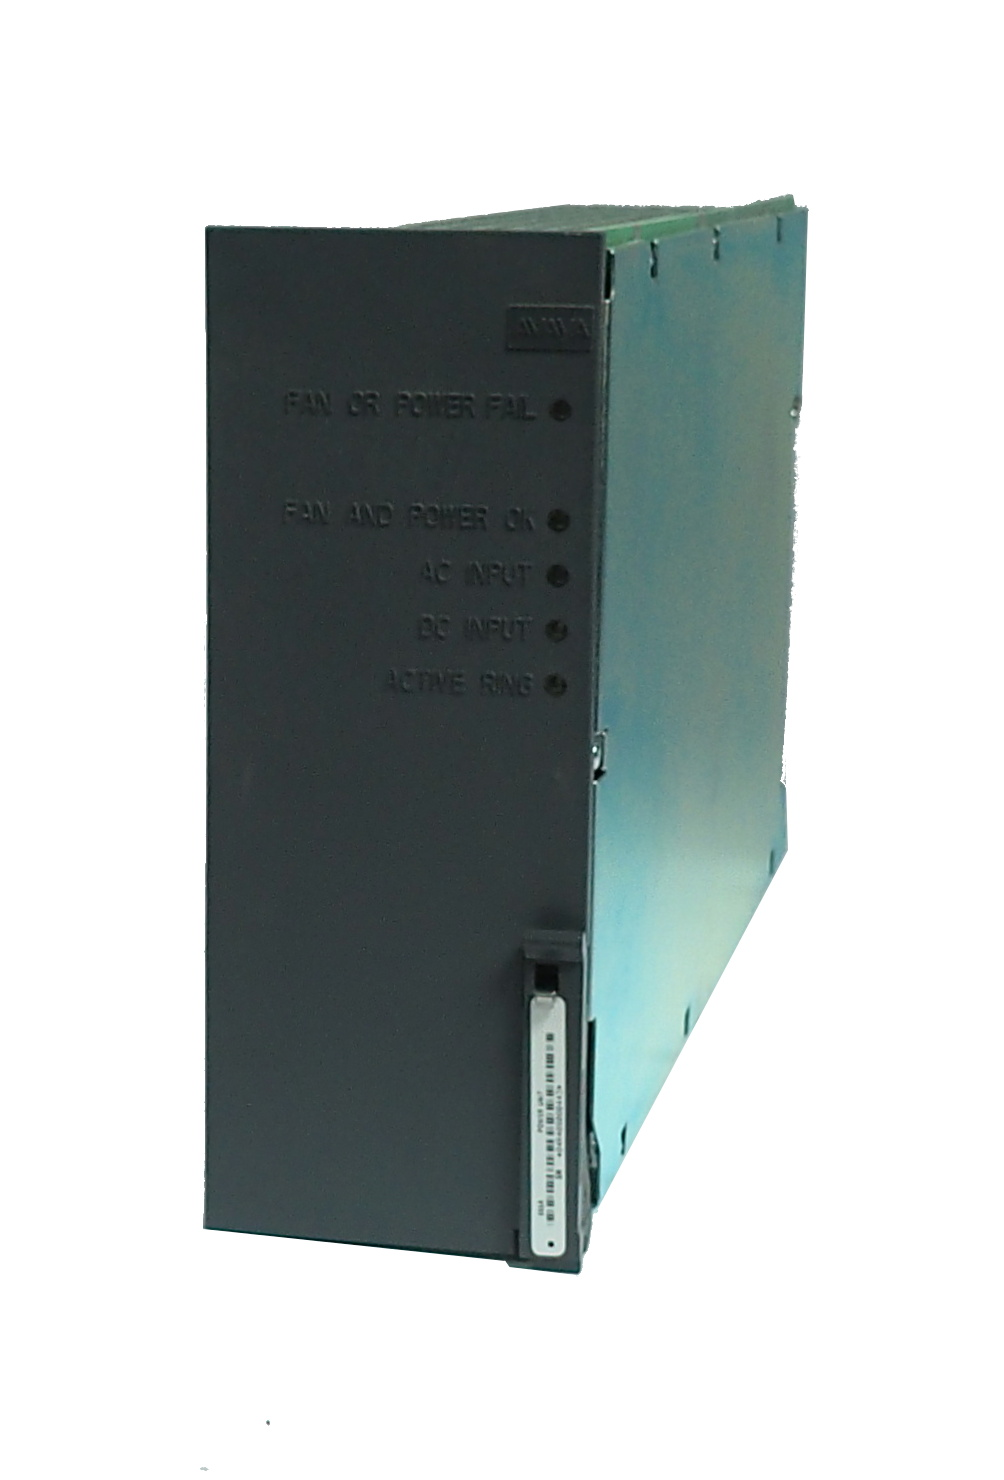 Avaya 700246671 Model: 655A 440W Power Supply For G650 Media Gateway